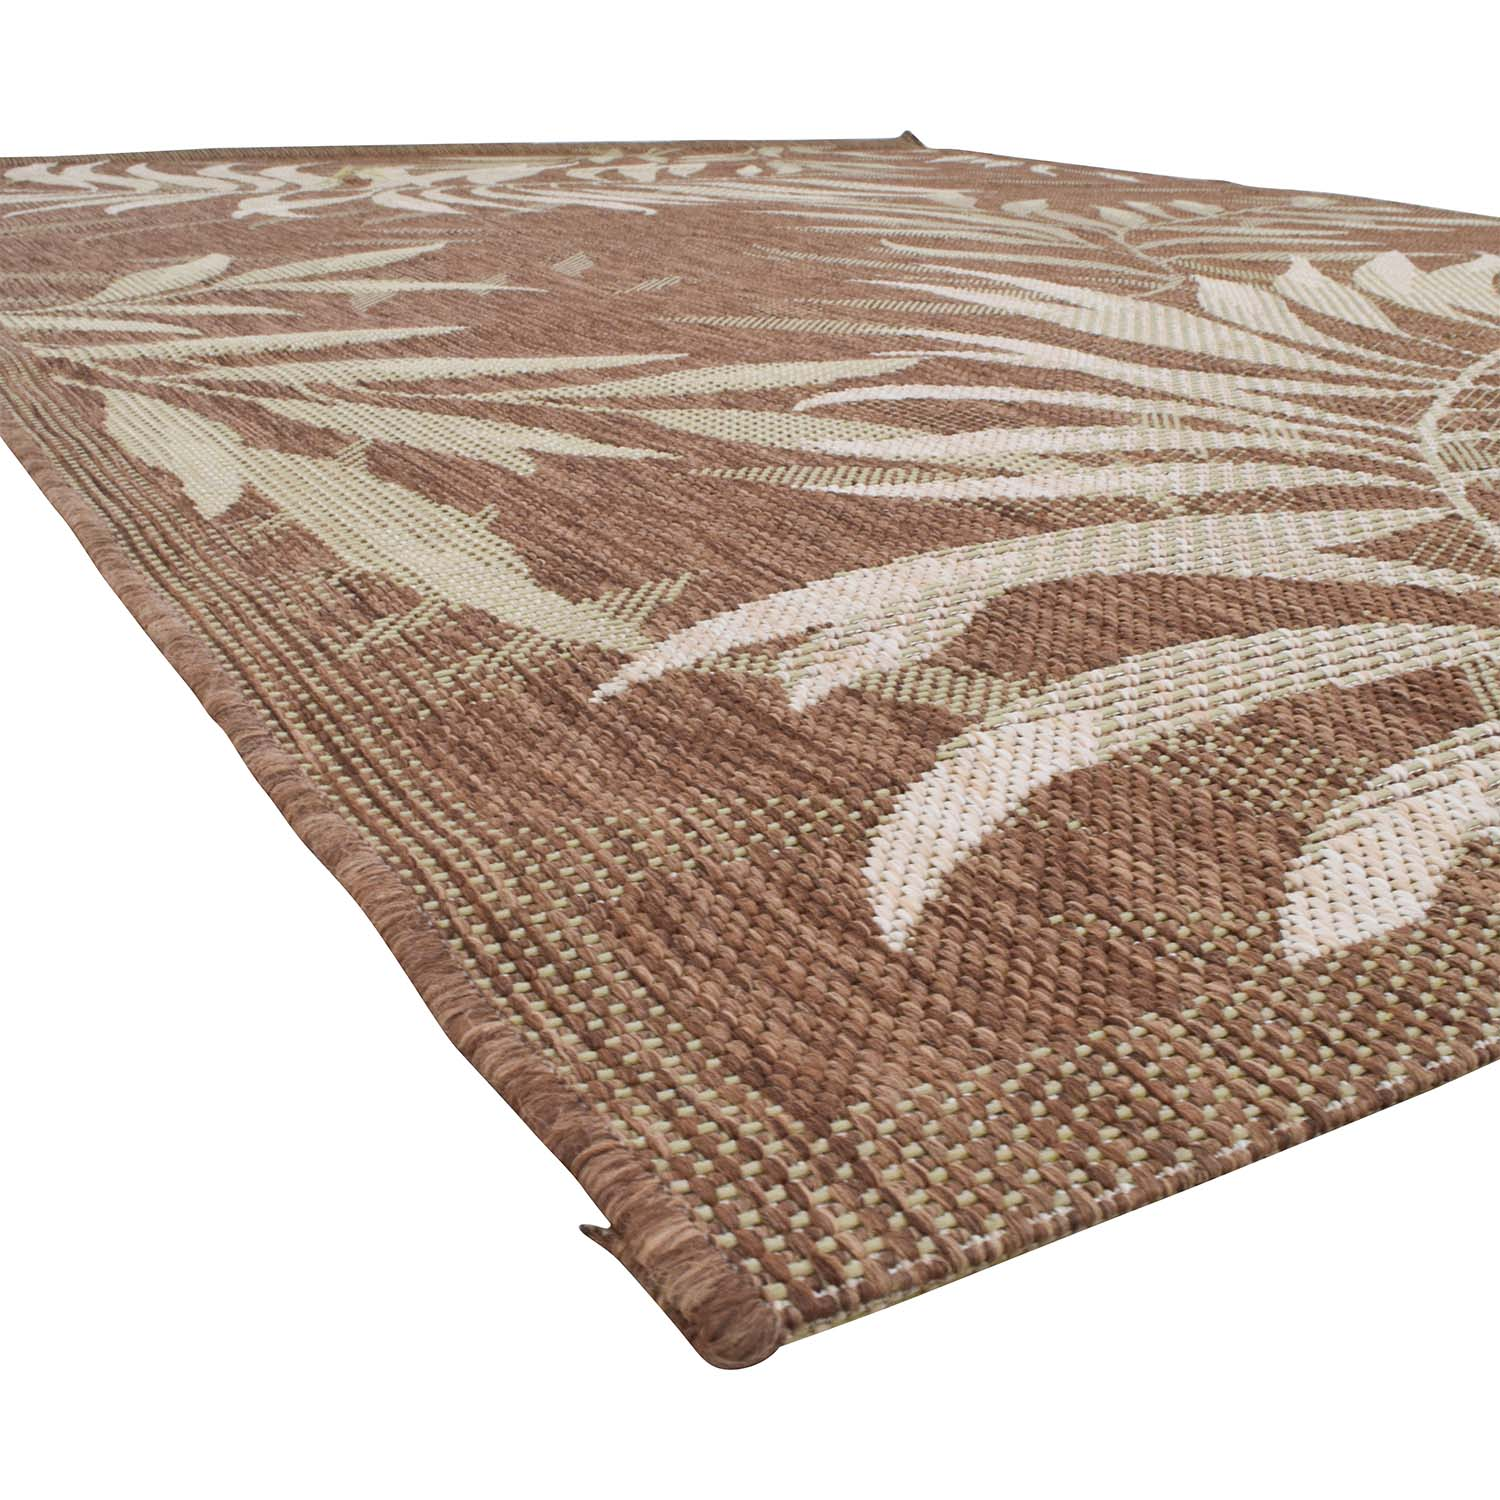 Balta Palm Leaf Havanah Indoor Outdoor Rug sale